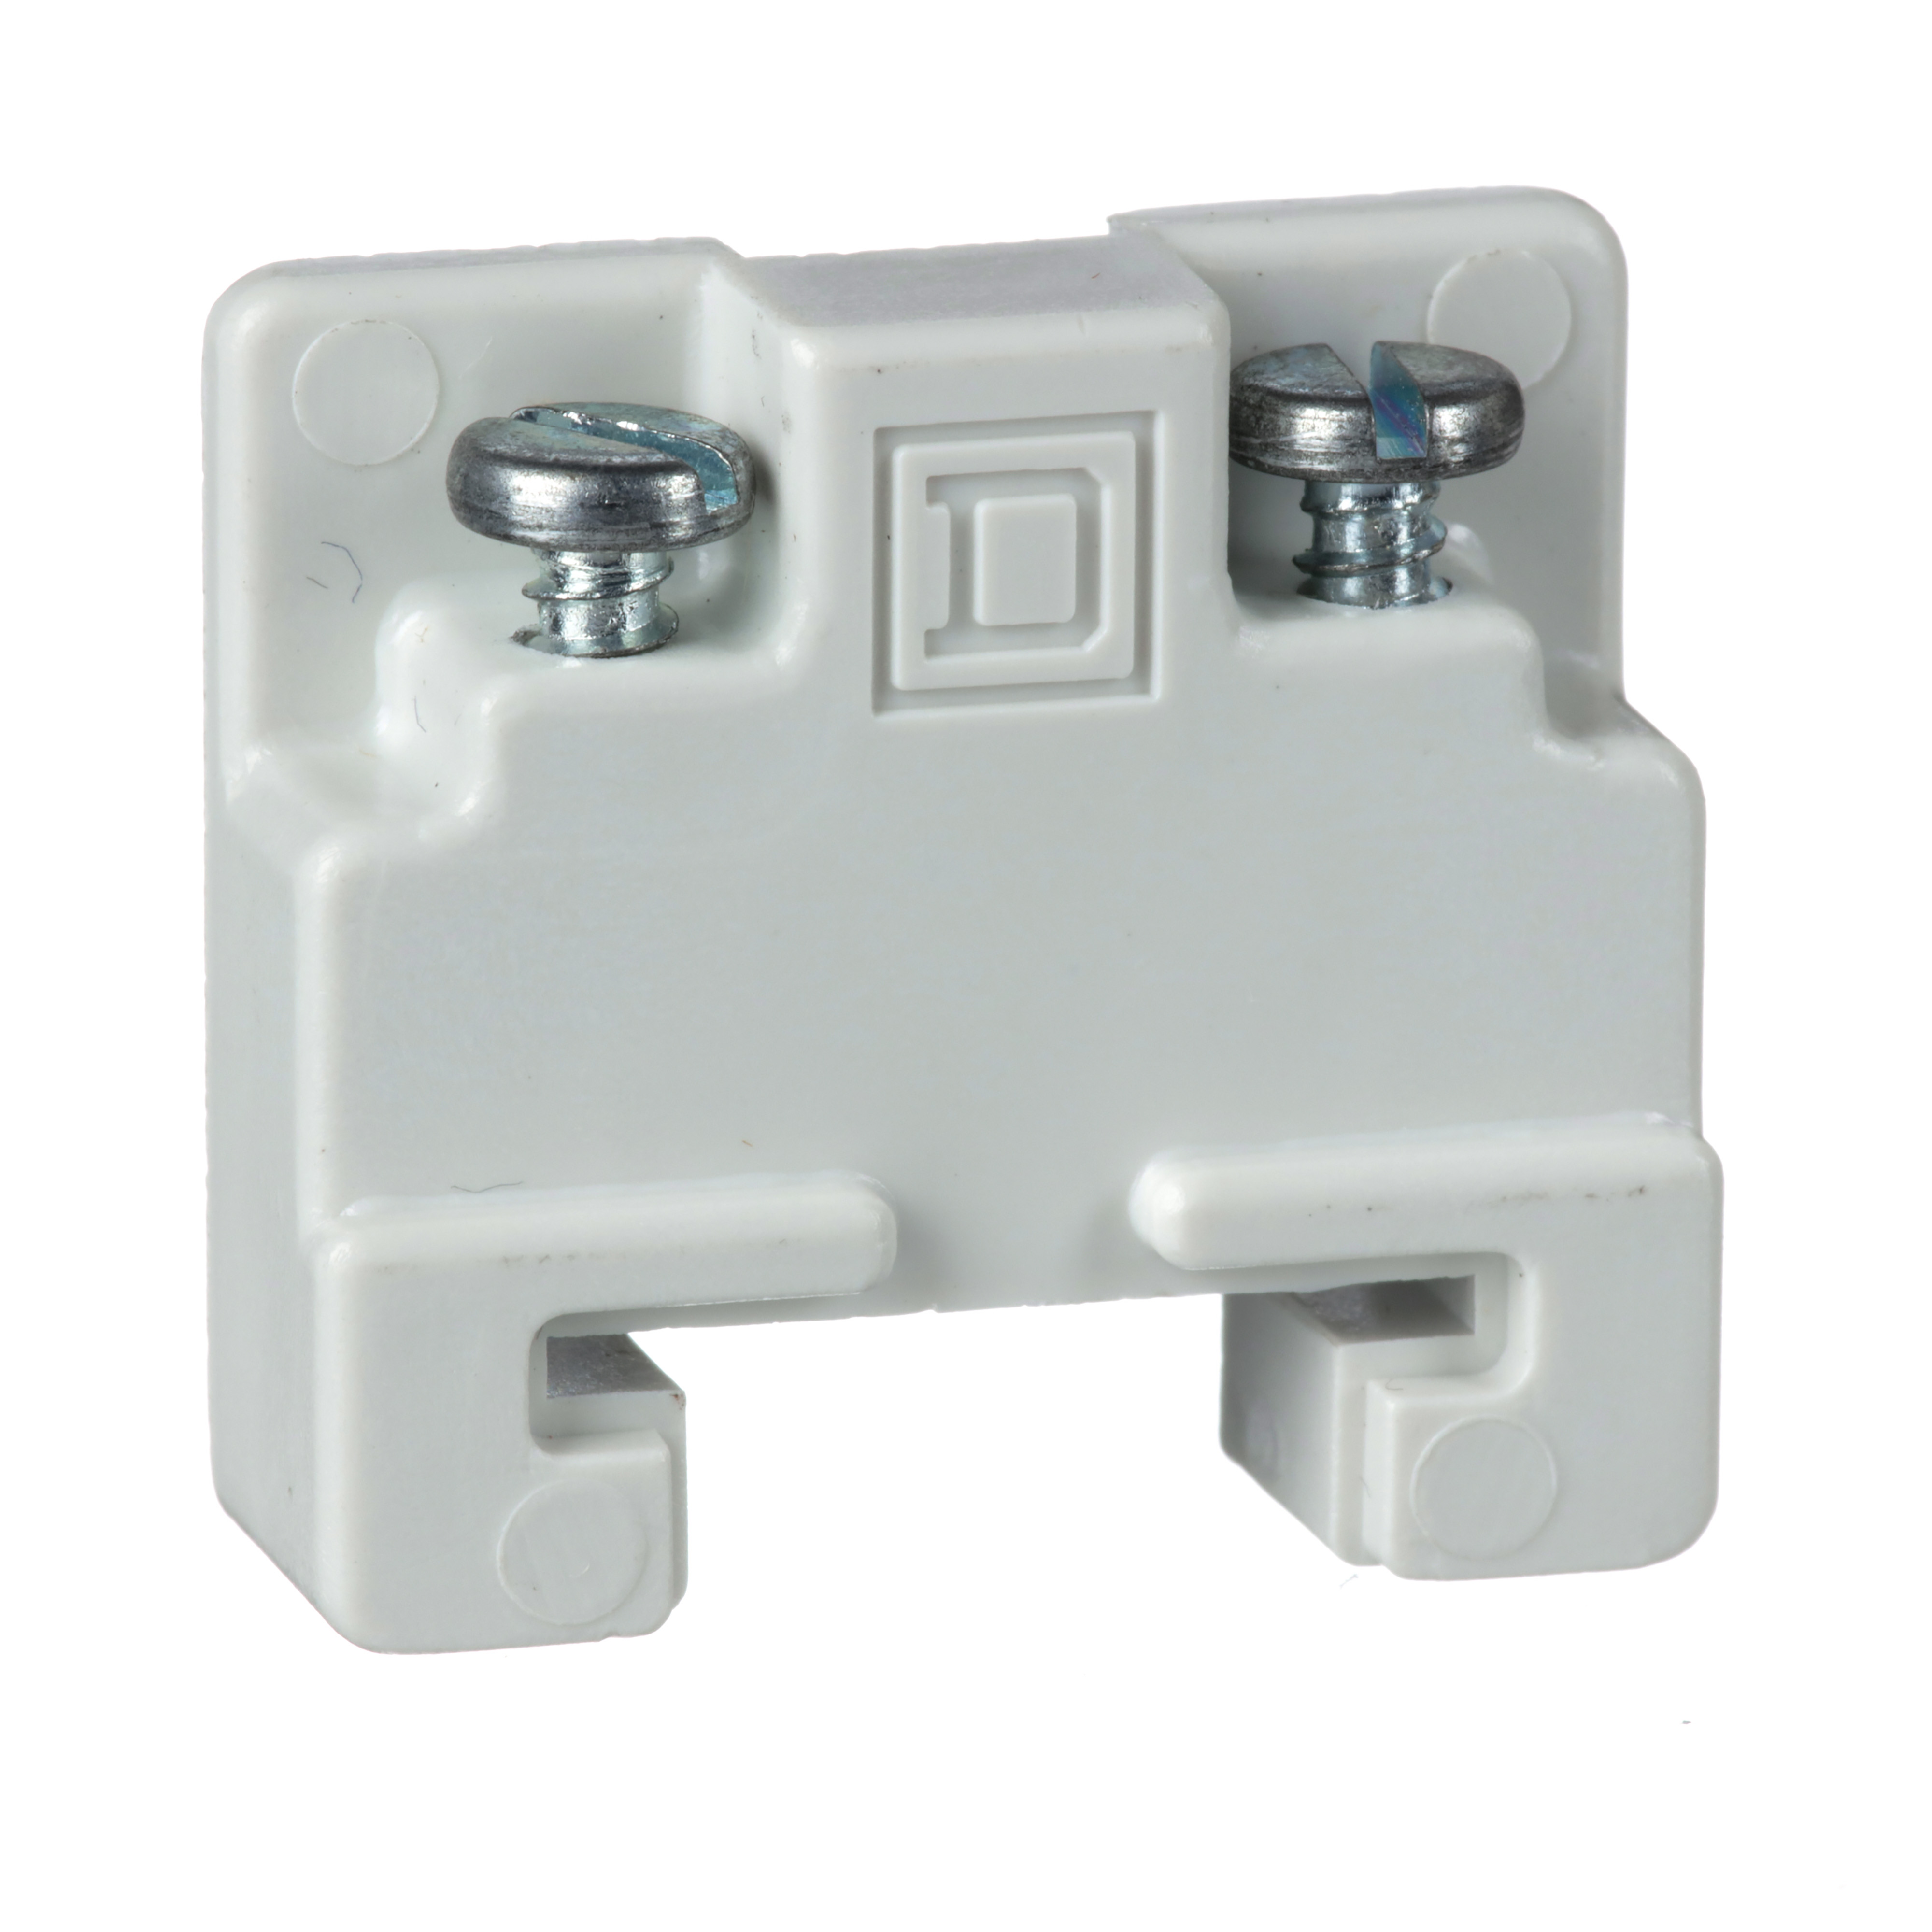 SQUARE D 9080GH10 : TERMINAL BLOCK END CLAMP G